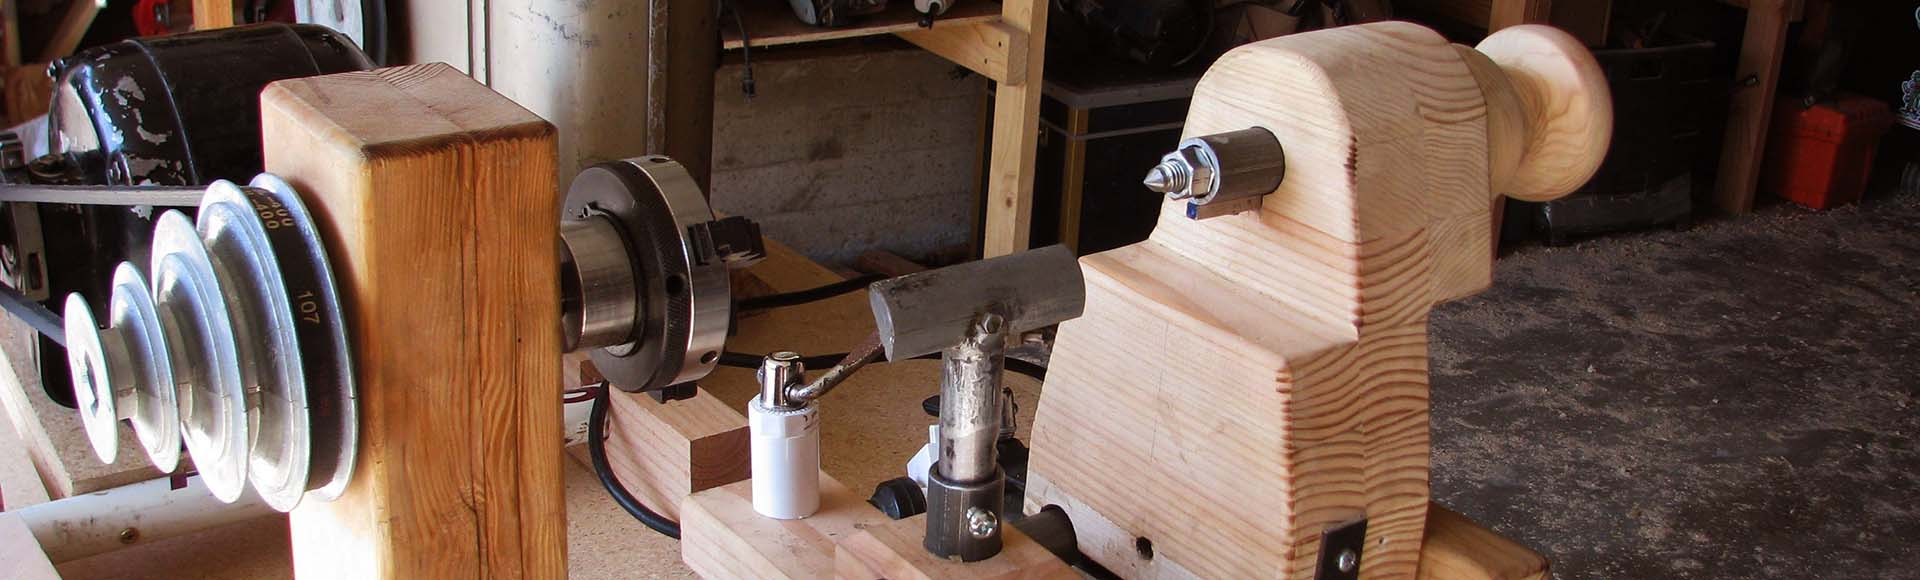 7 BEST WOOD LATHES 2019 [Which Is The Best For Your Needs?]